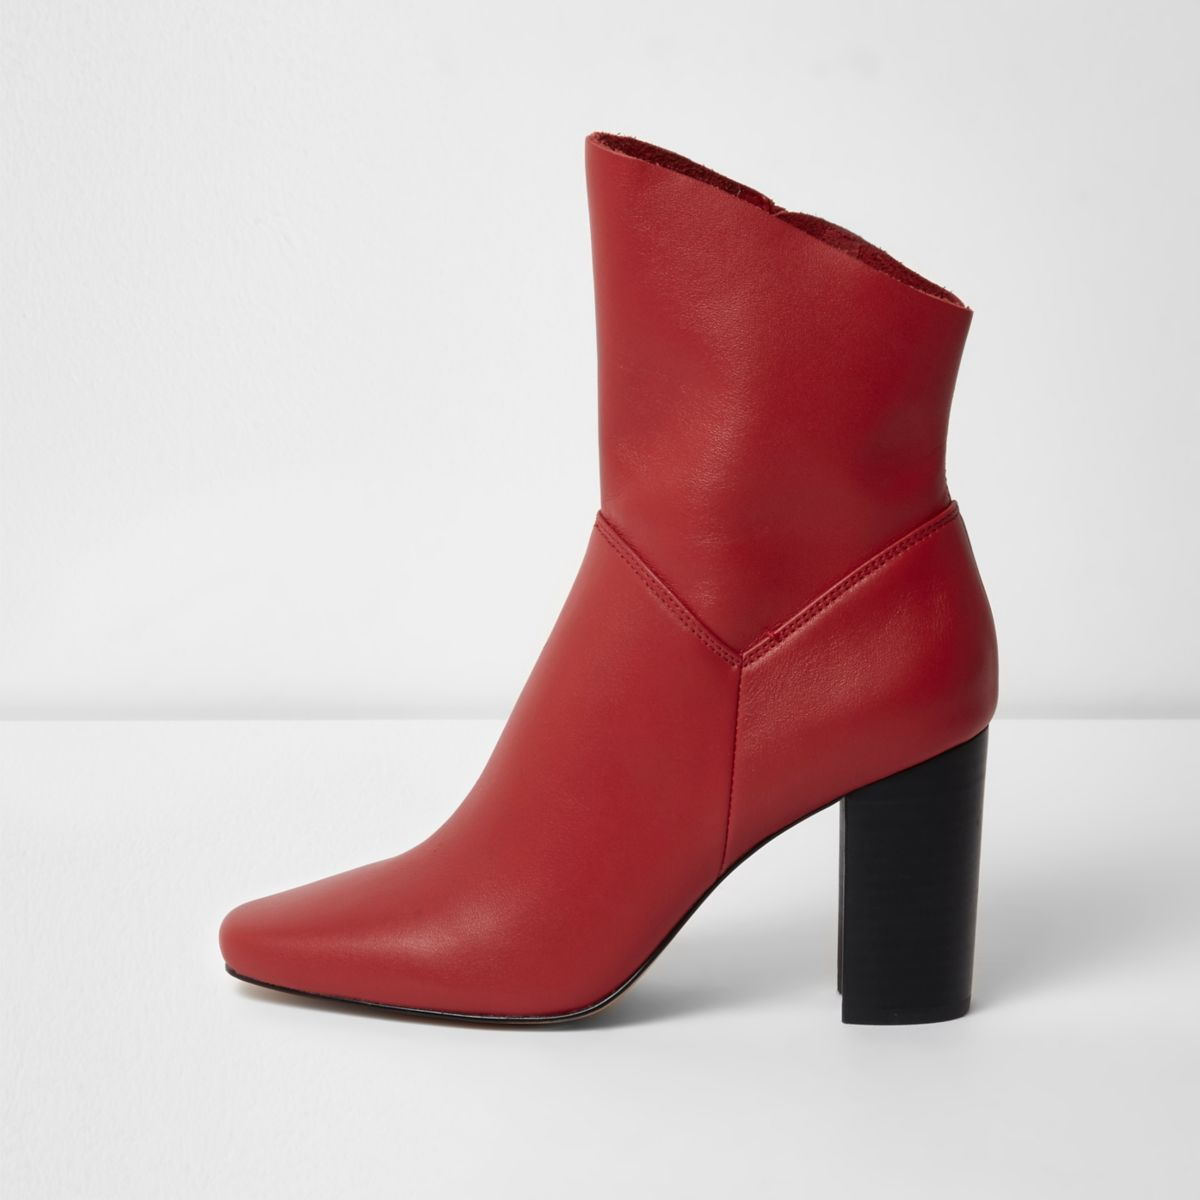 Red leather block heel boots